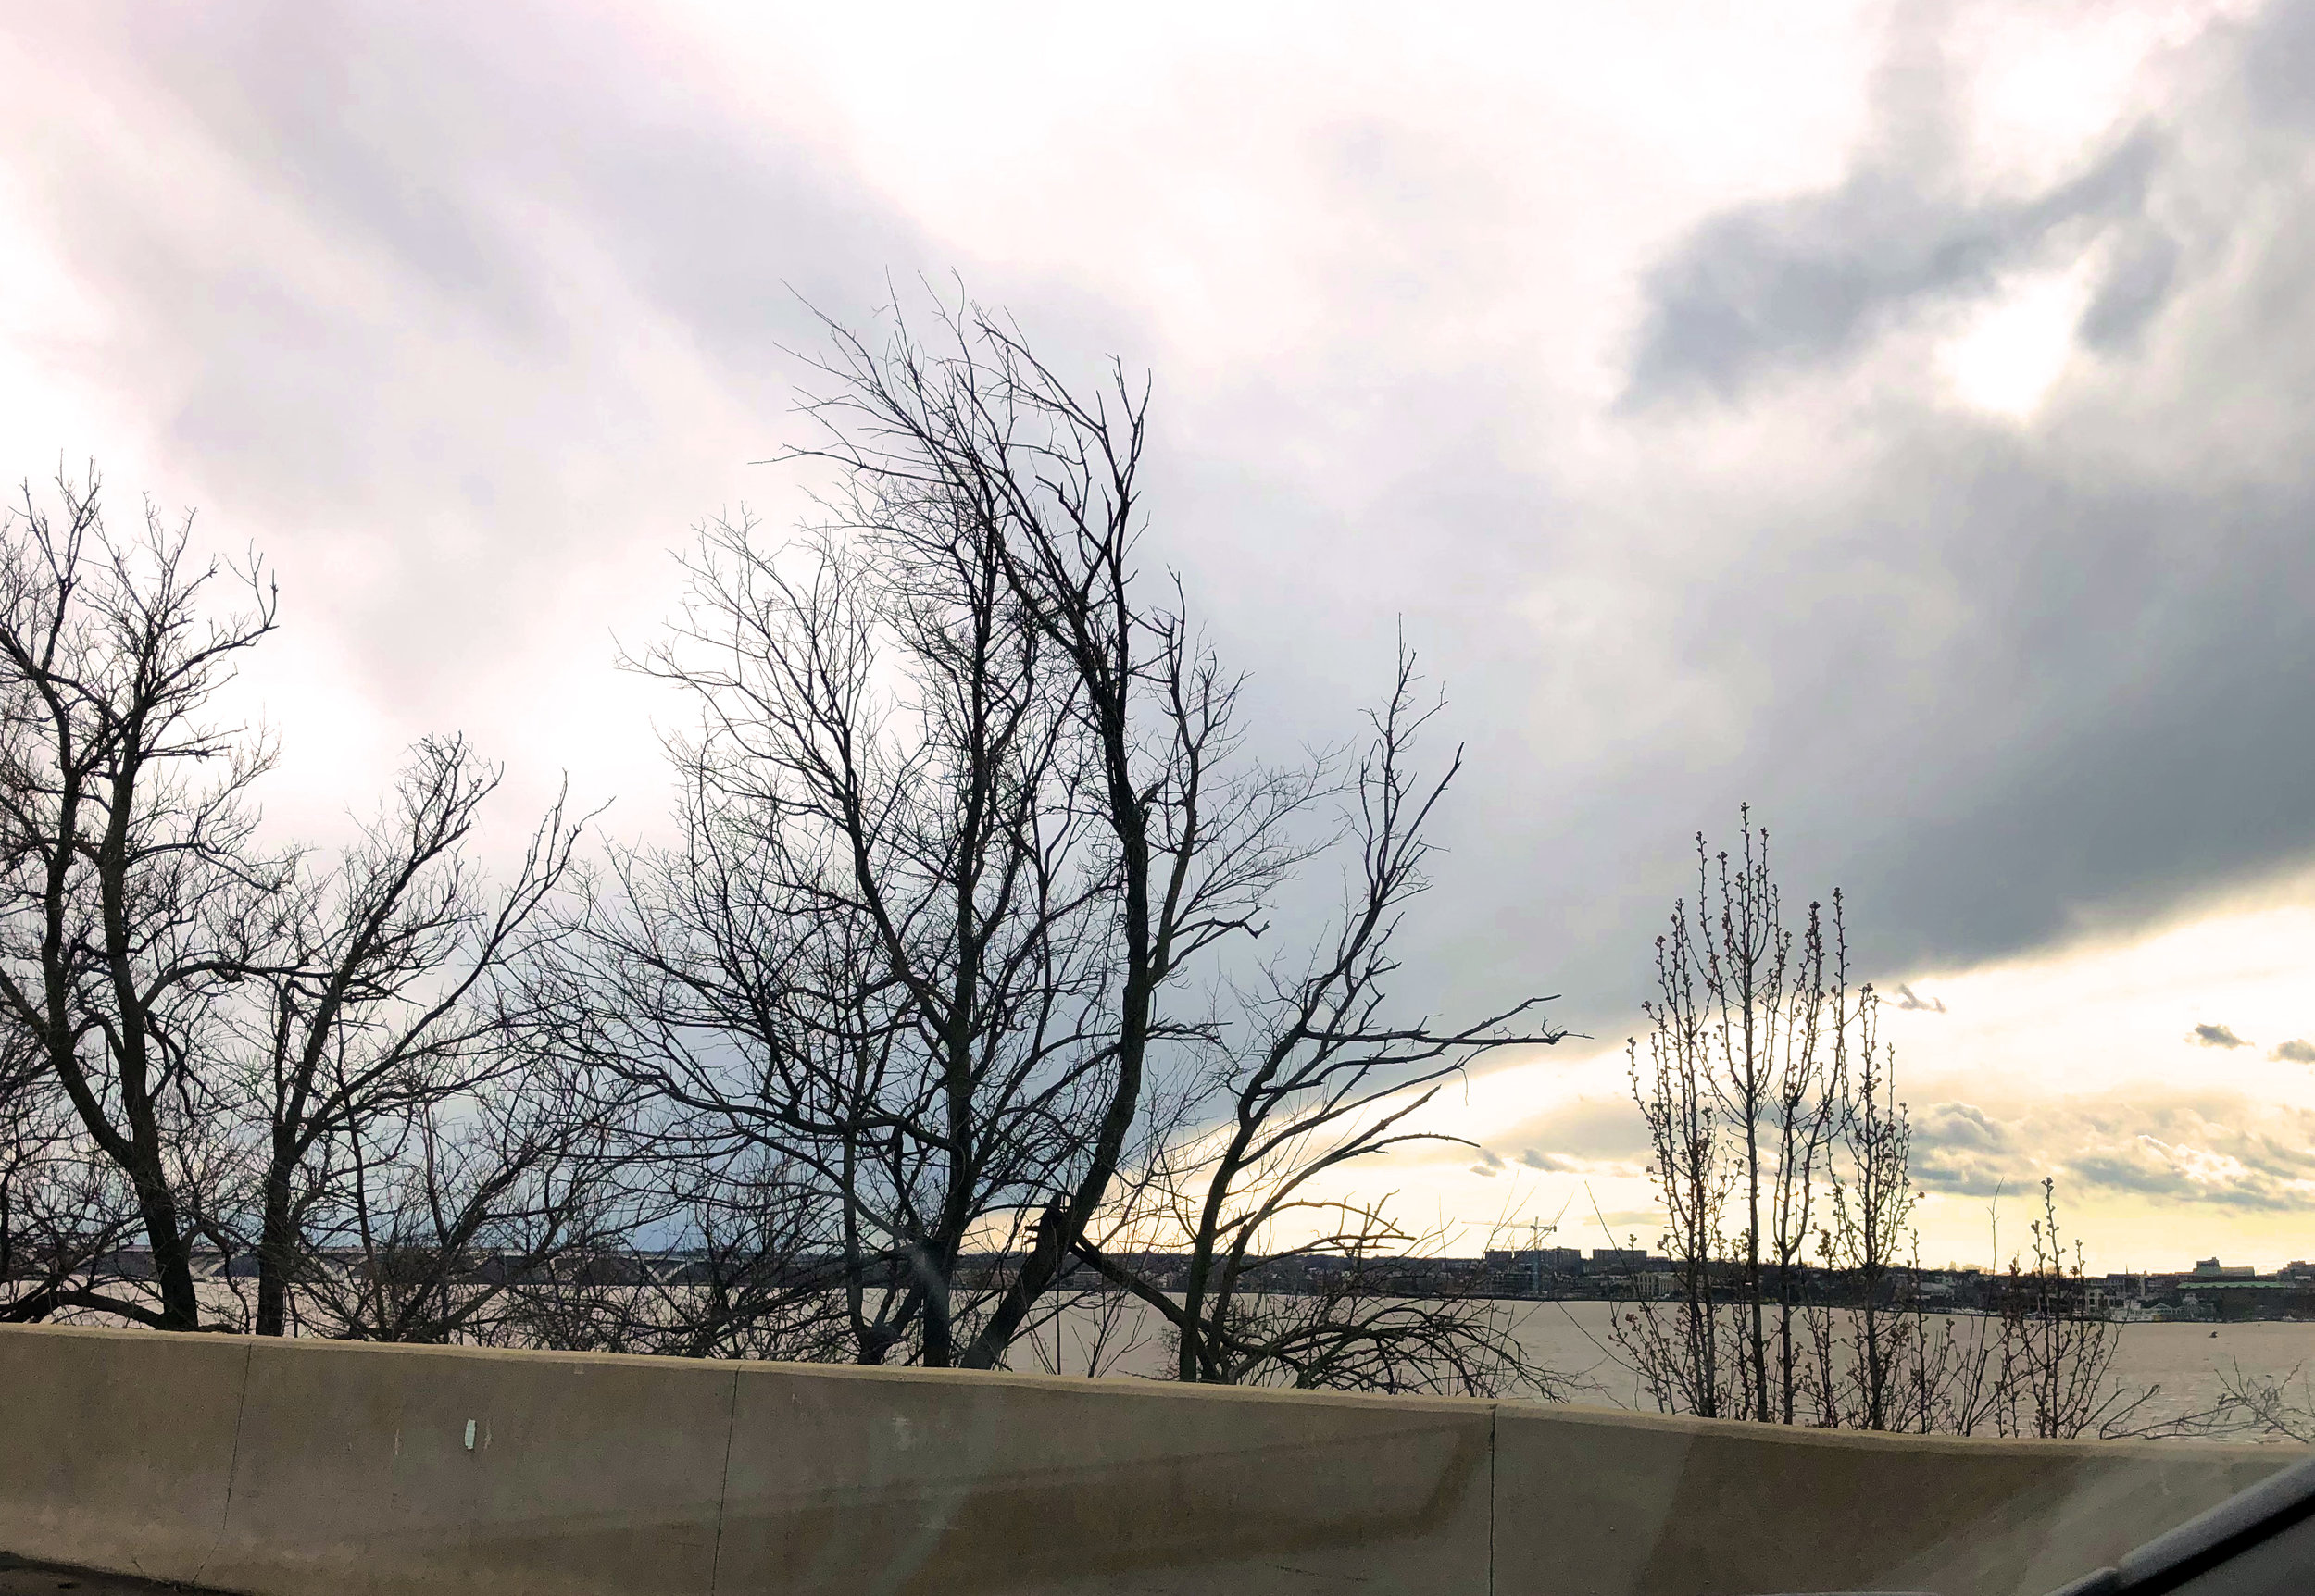 Post-storm skies during a 20 minute traffic stop in D.C. Definitely no cherry blossoms yet.